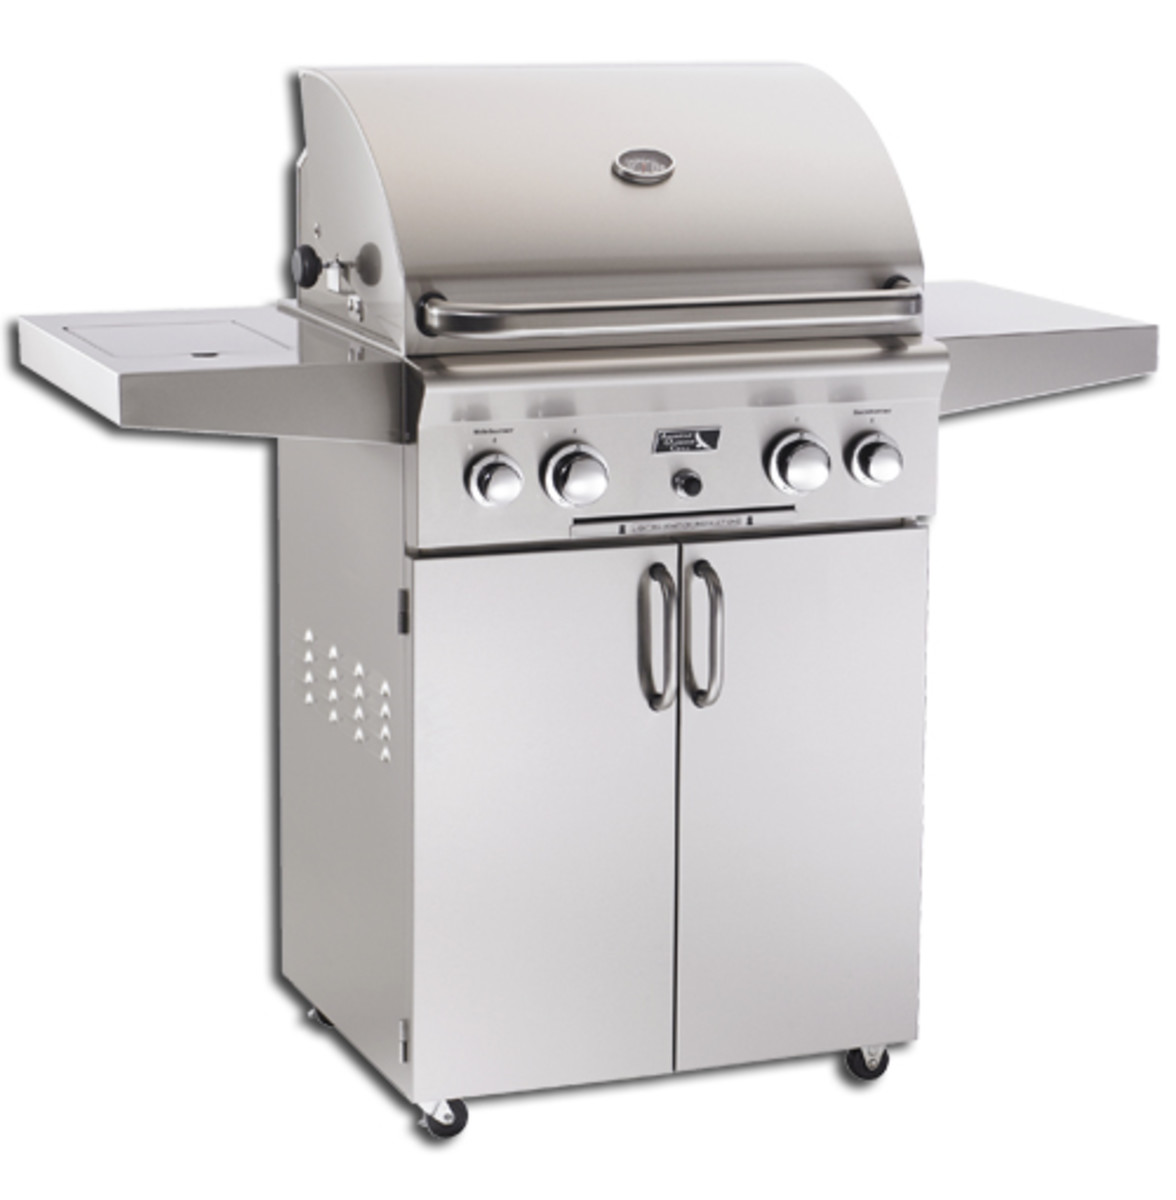 American outdoor 24 inch grill on a portable cart.